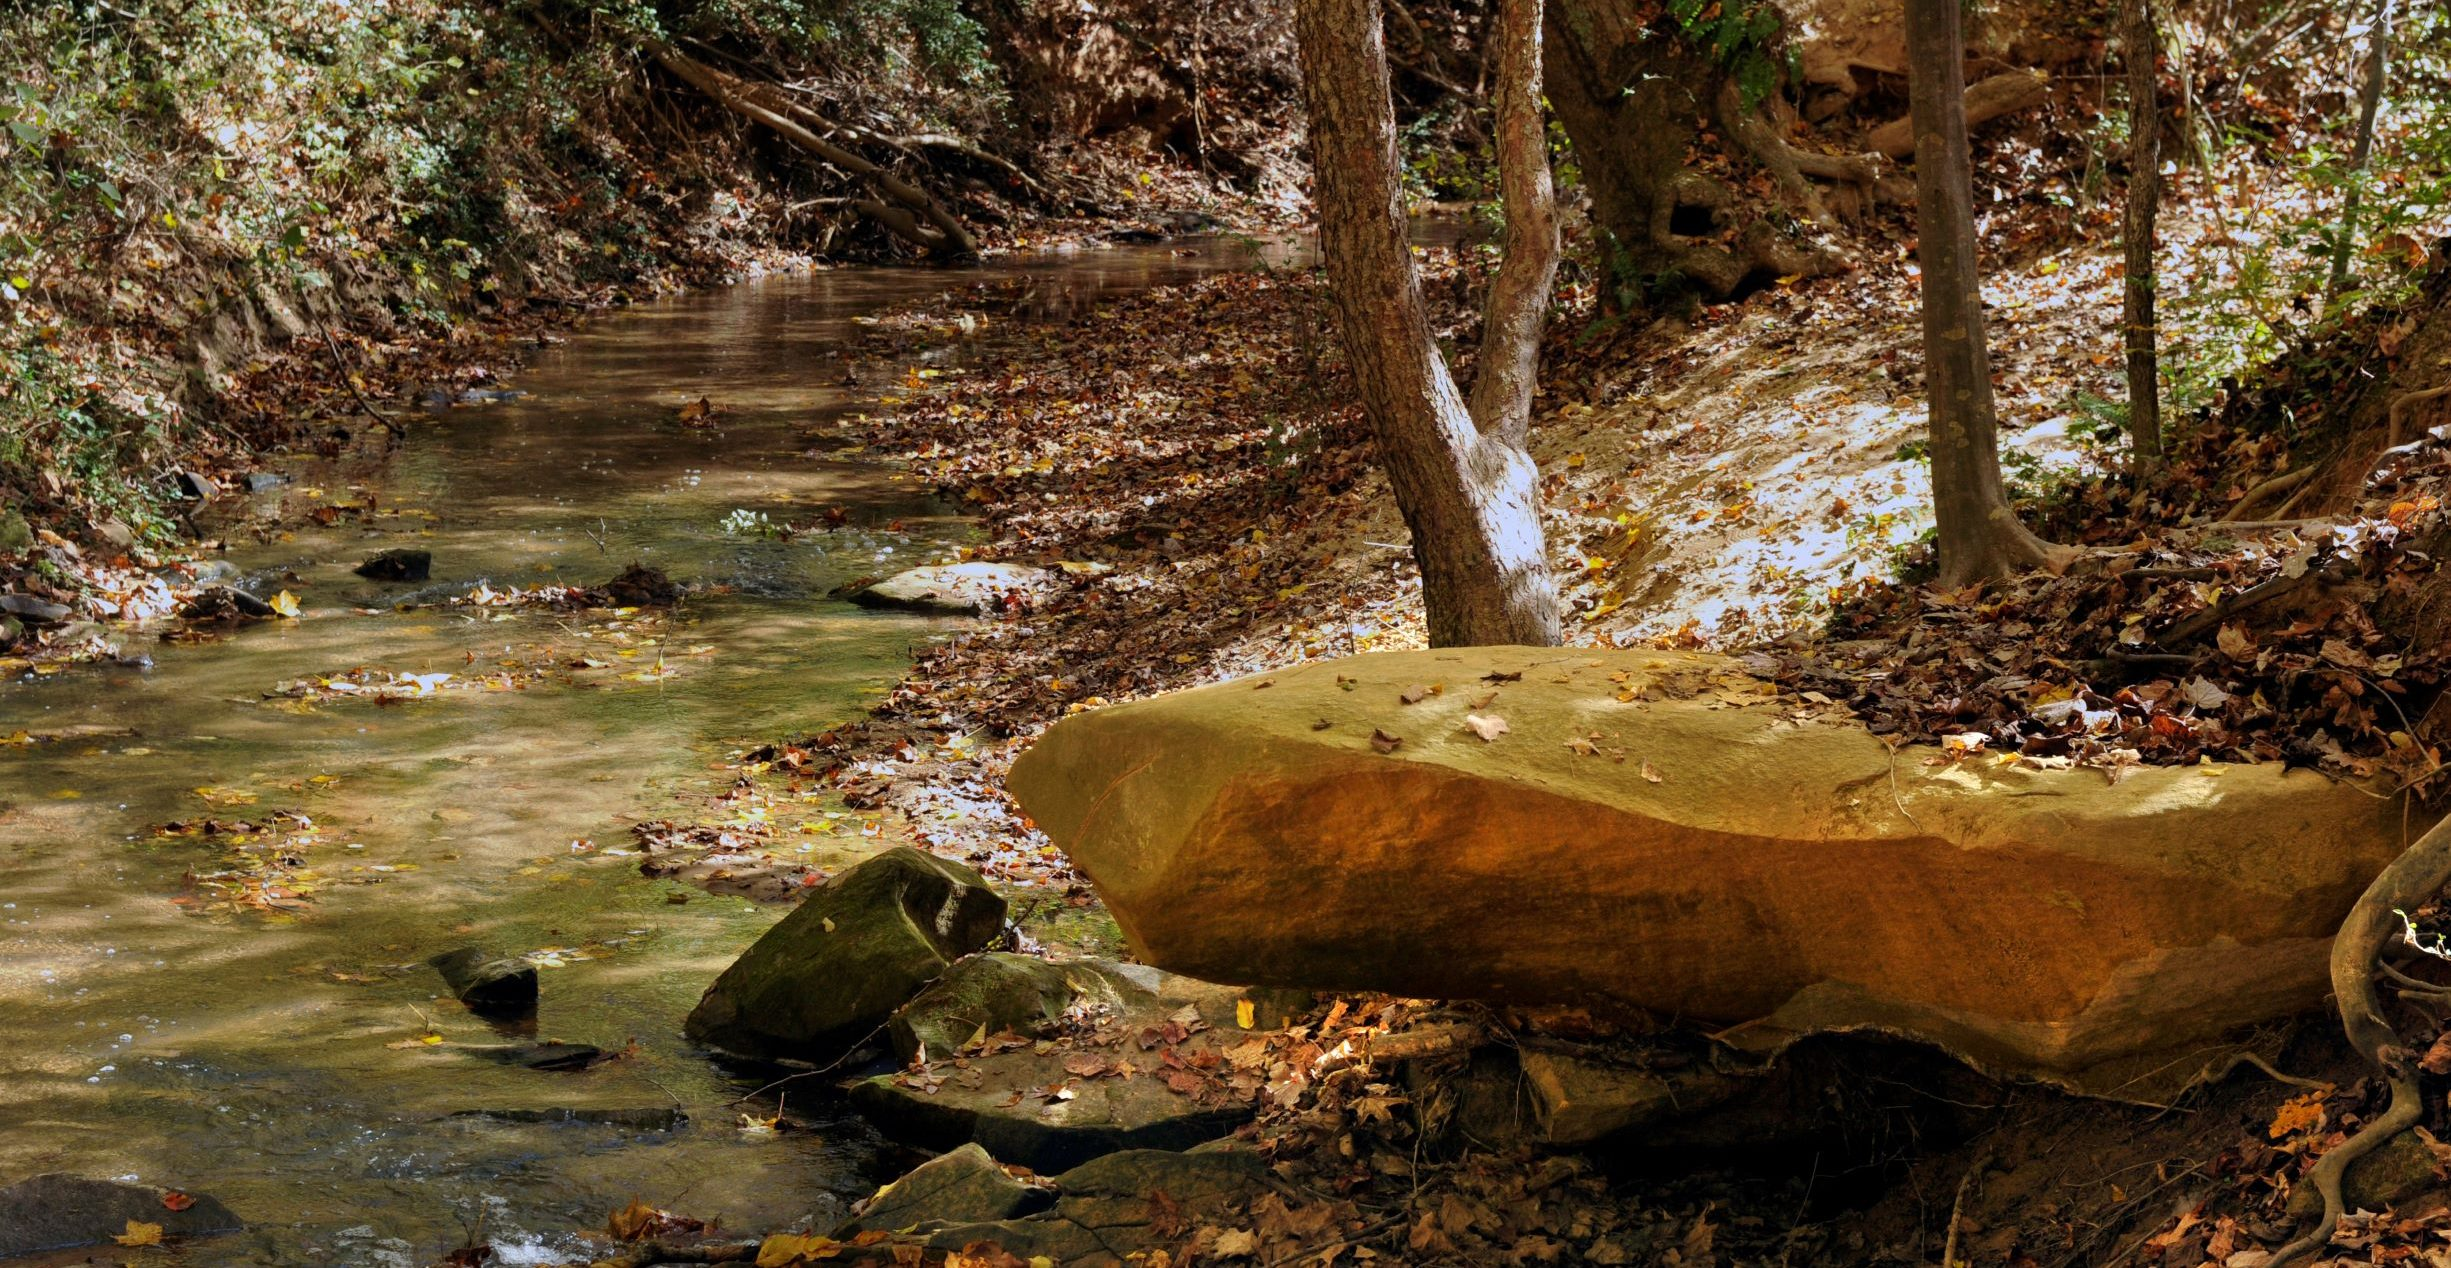 Image of creek with rocks and fall leaves in the water, bordered by hardwood trees. The Conservancy is improving water quality in Forney Creek.